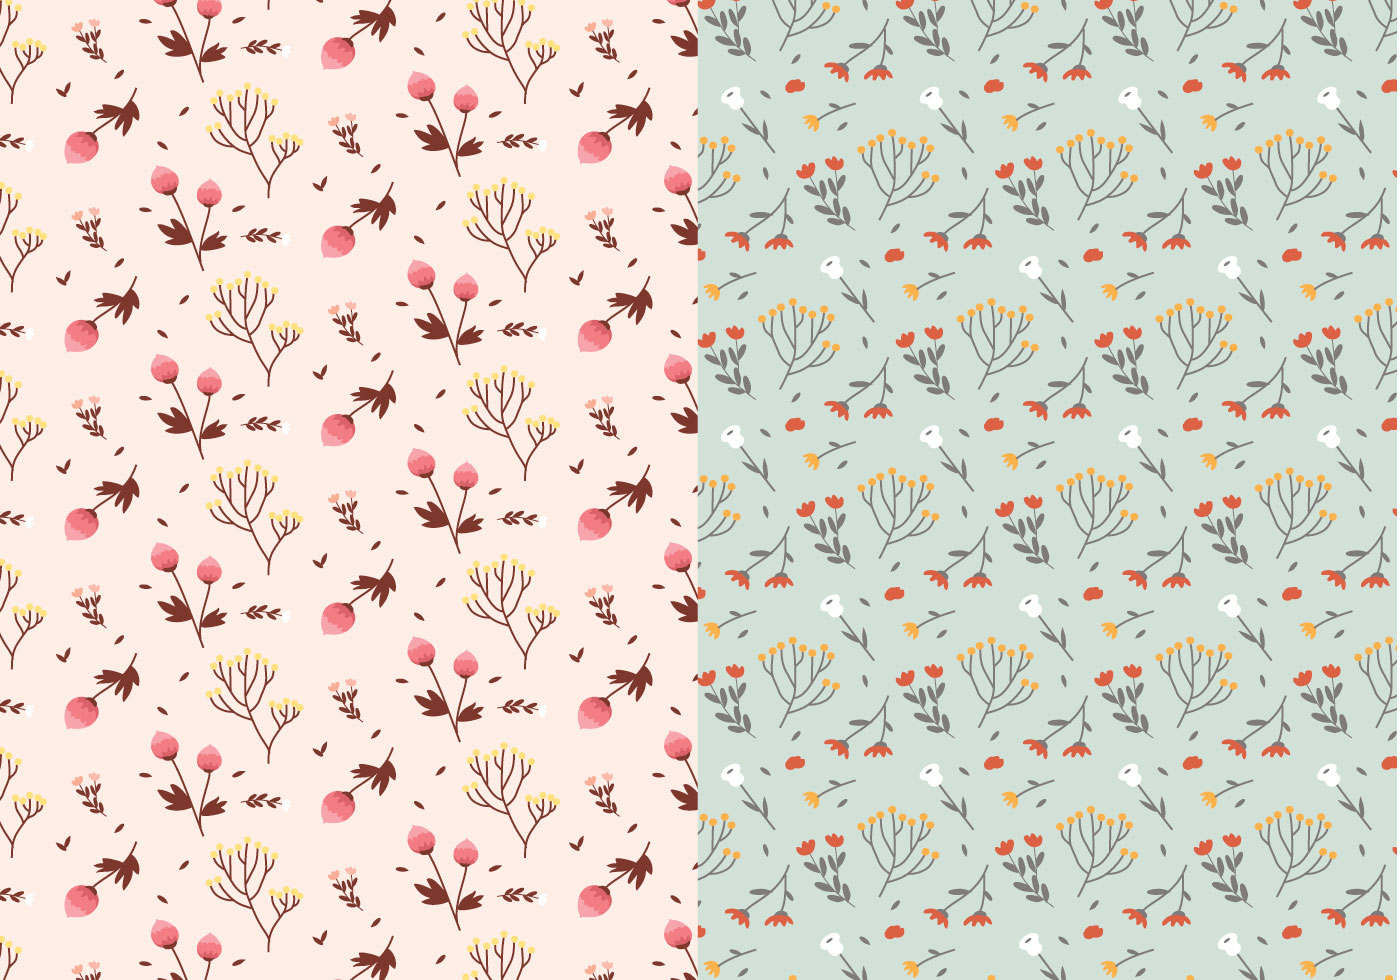 Pastel Plants Patterns Free Photoshop Brushes At Brusheezy